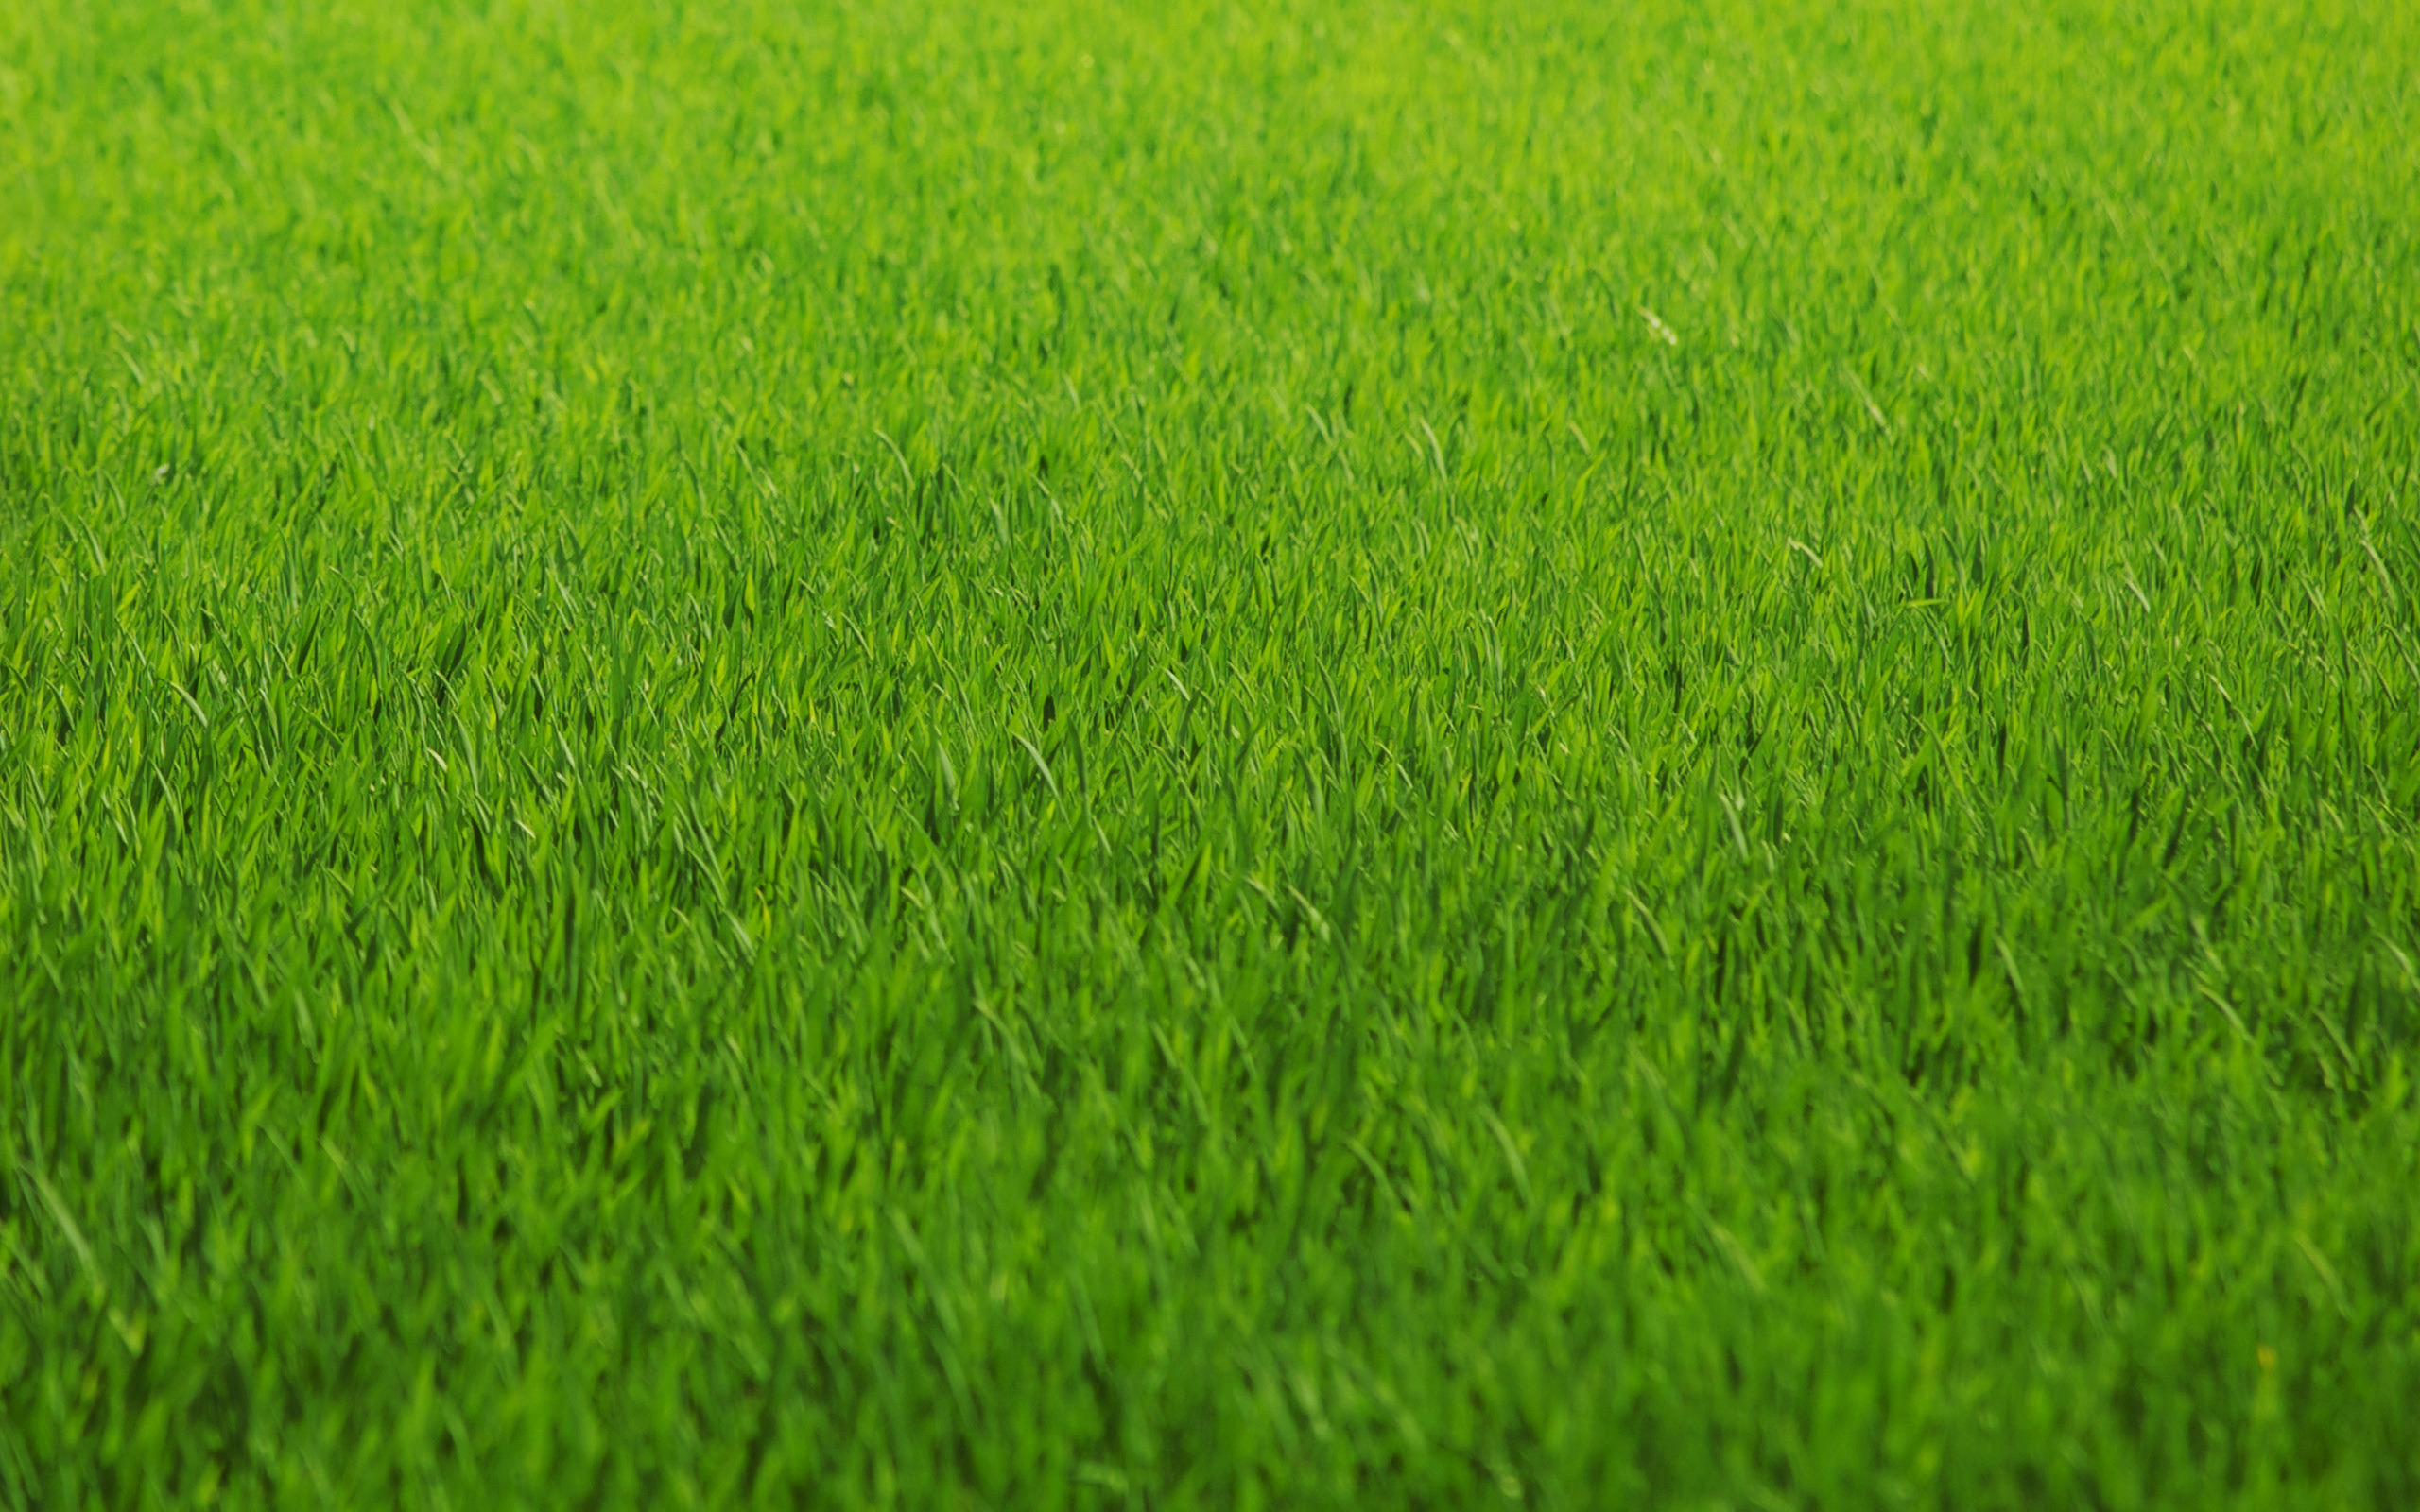 green grass background texture download photo green grass texture. Black Bedroom Furniture Sets. Home Design Ideas